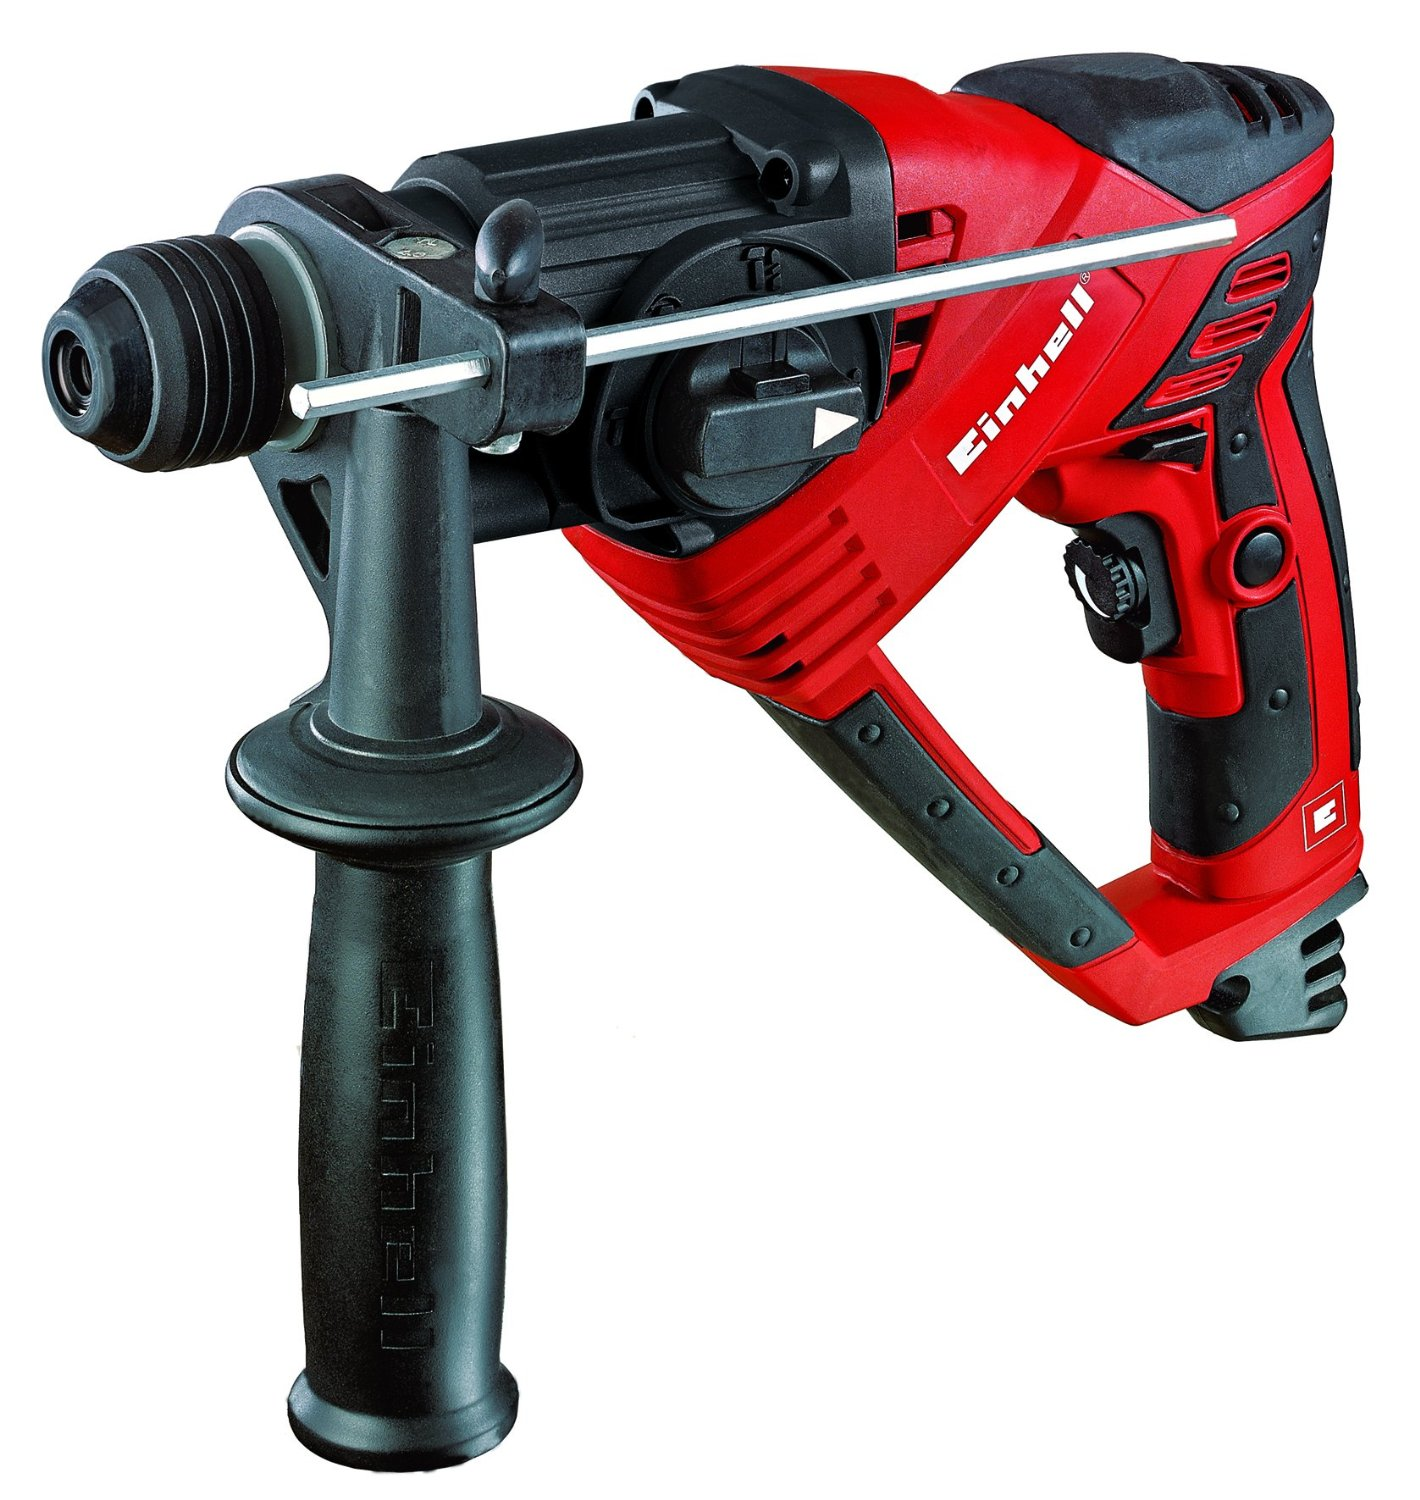 Einhell-RT-RH-20-Marteau-perforateur-électrique-5 Avis Perceuse a percussion Bosch GSB 21-2 RE